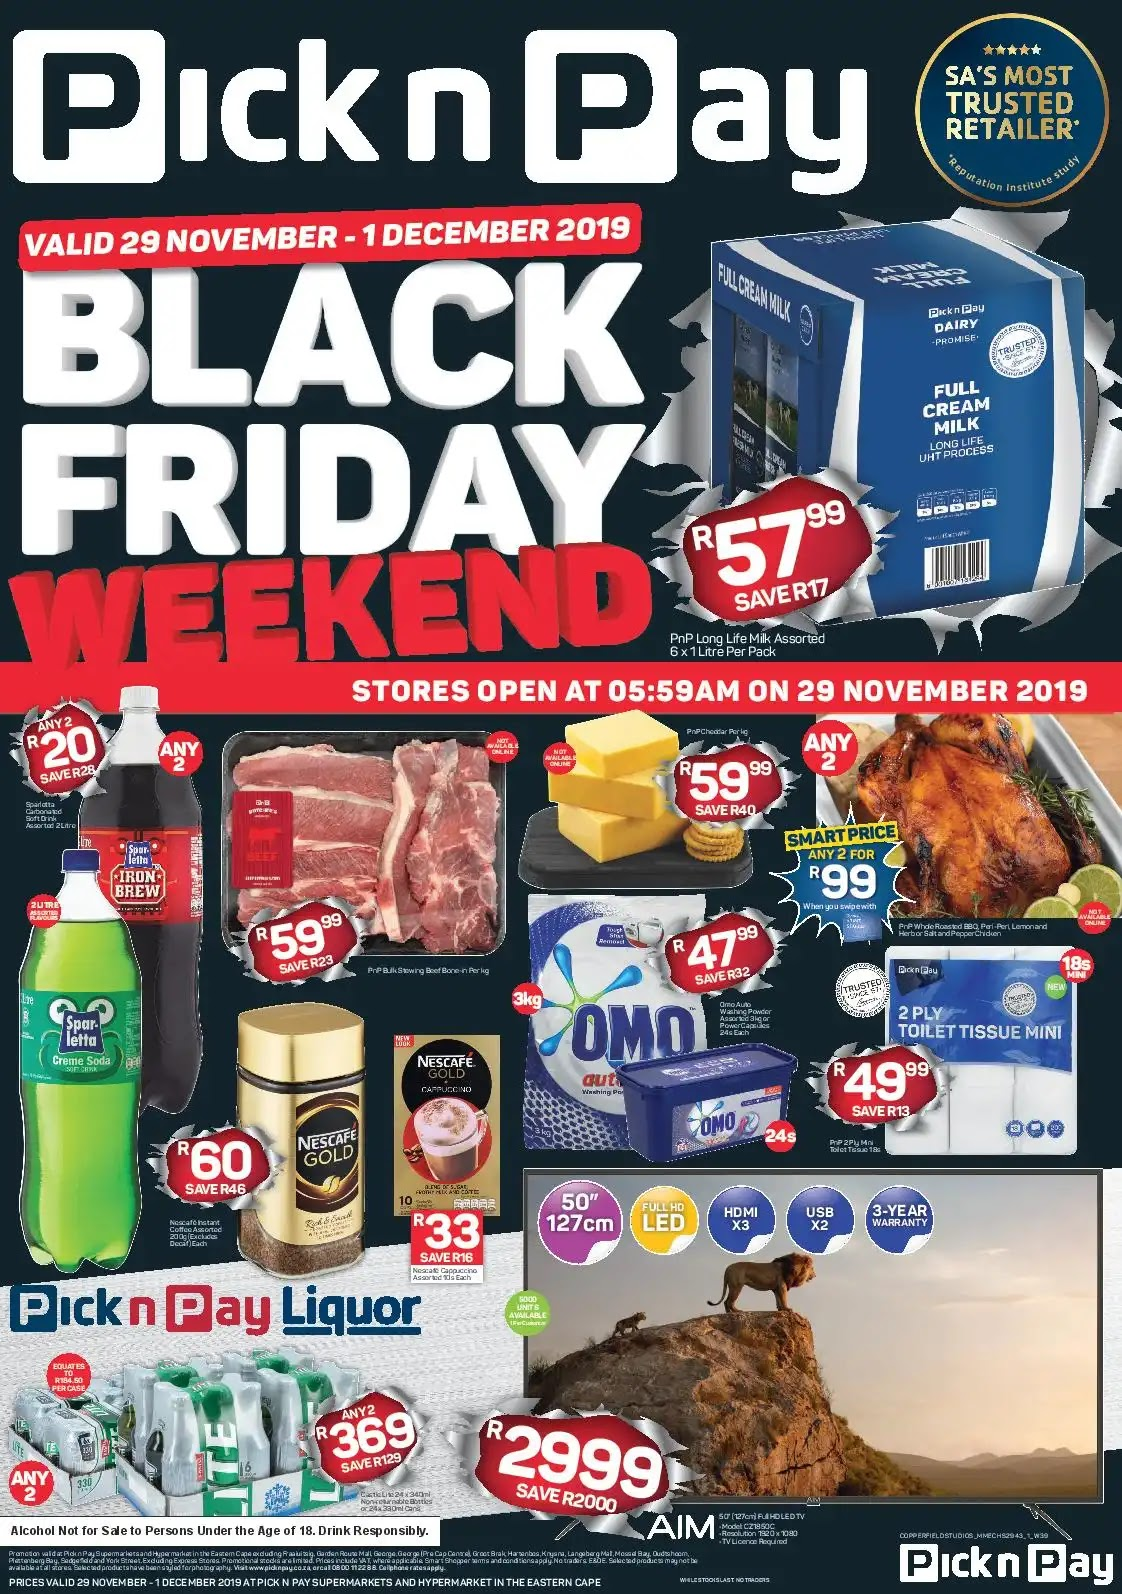 Pick n Pay Black Friday Deals - Eastern Cape